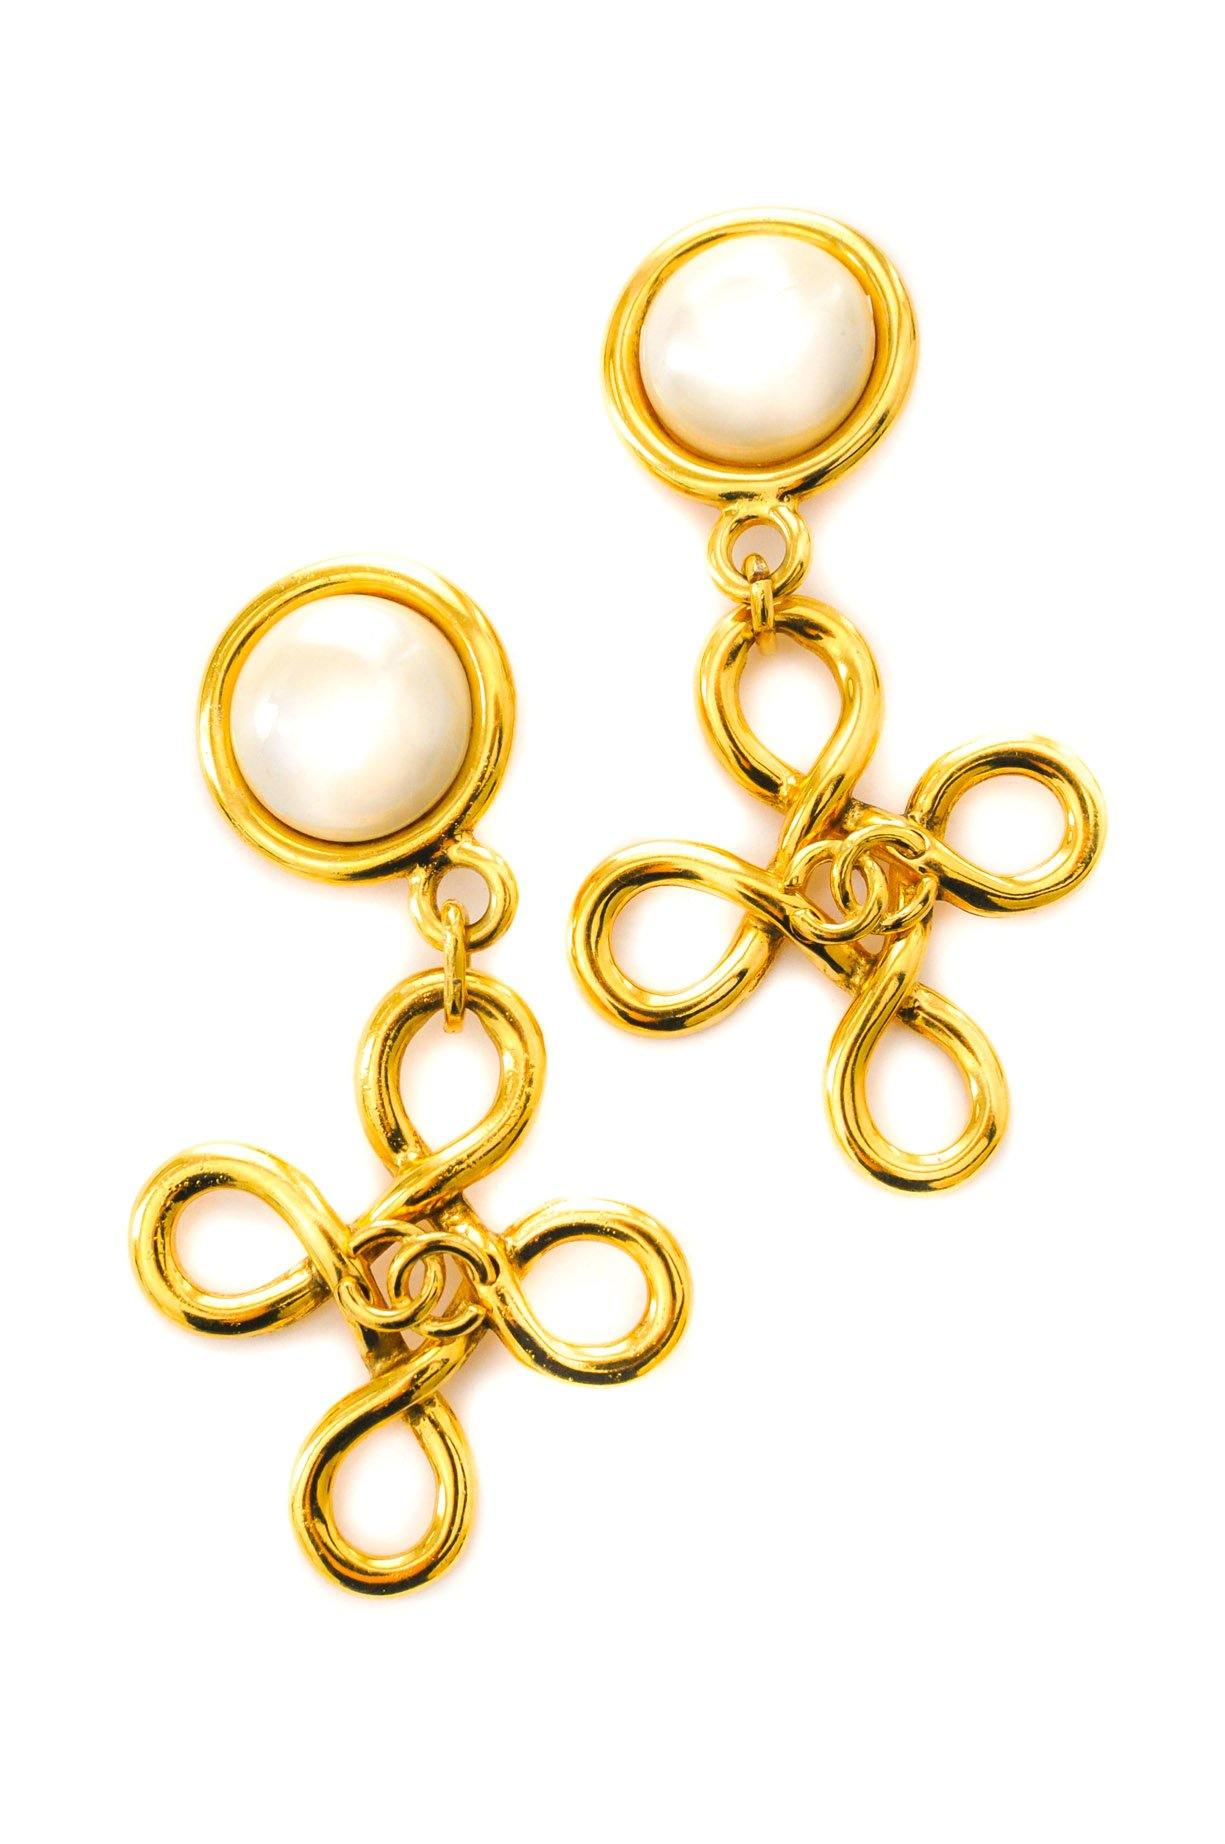 Chanel Twisted Pearl Clip-on Earrings